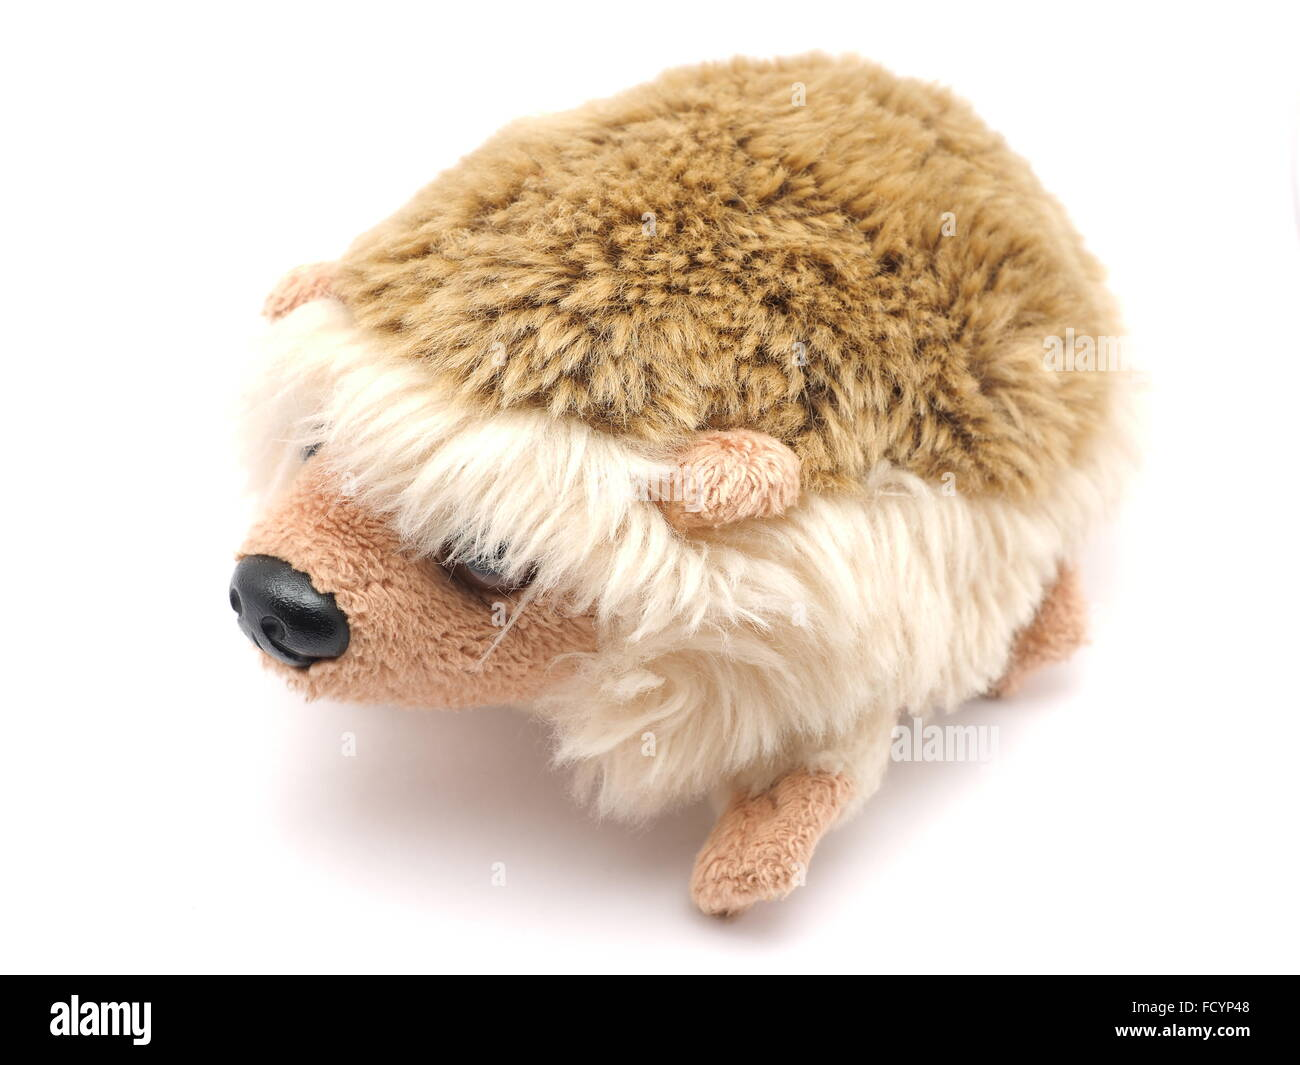 soft toy hedgehog on a white background - Stock Image